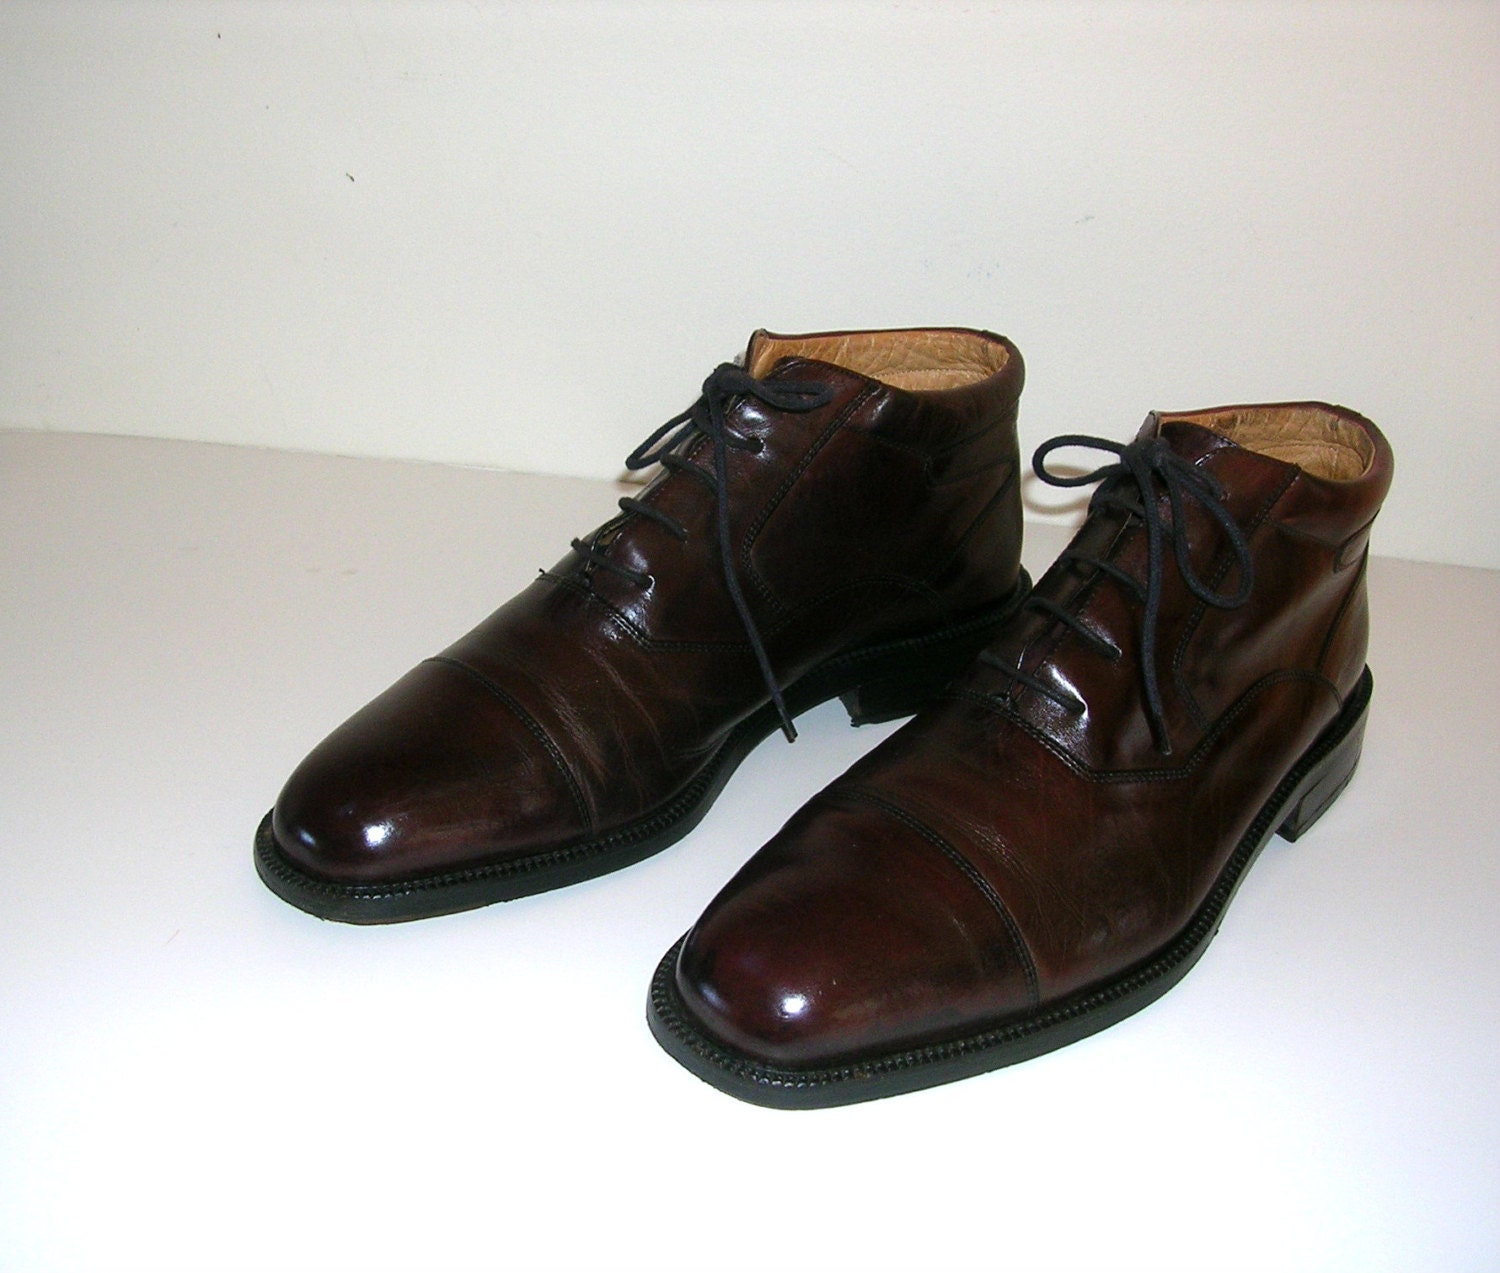 Johnson & Murphy 8 1/2 M Refurbished Vintage Brown Leather Shoes Ankle Cap Toe Boots Great Syle Wonderful Condition Best High Quality - Insideredo